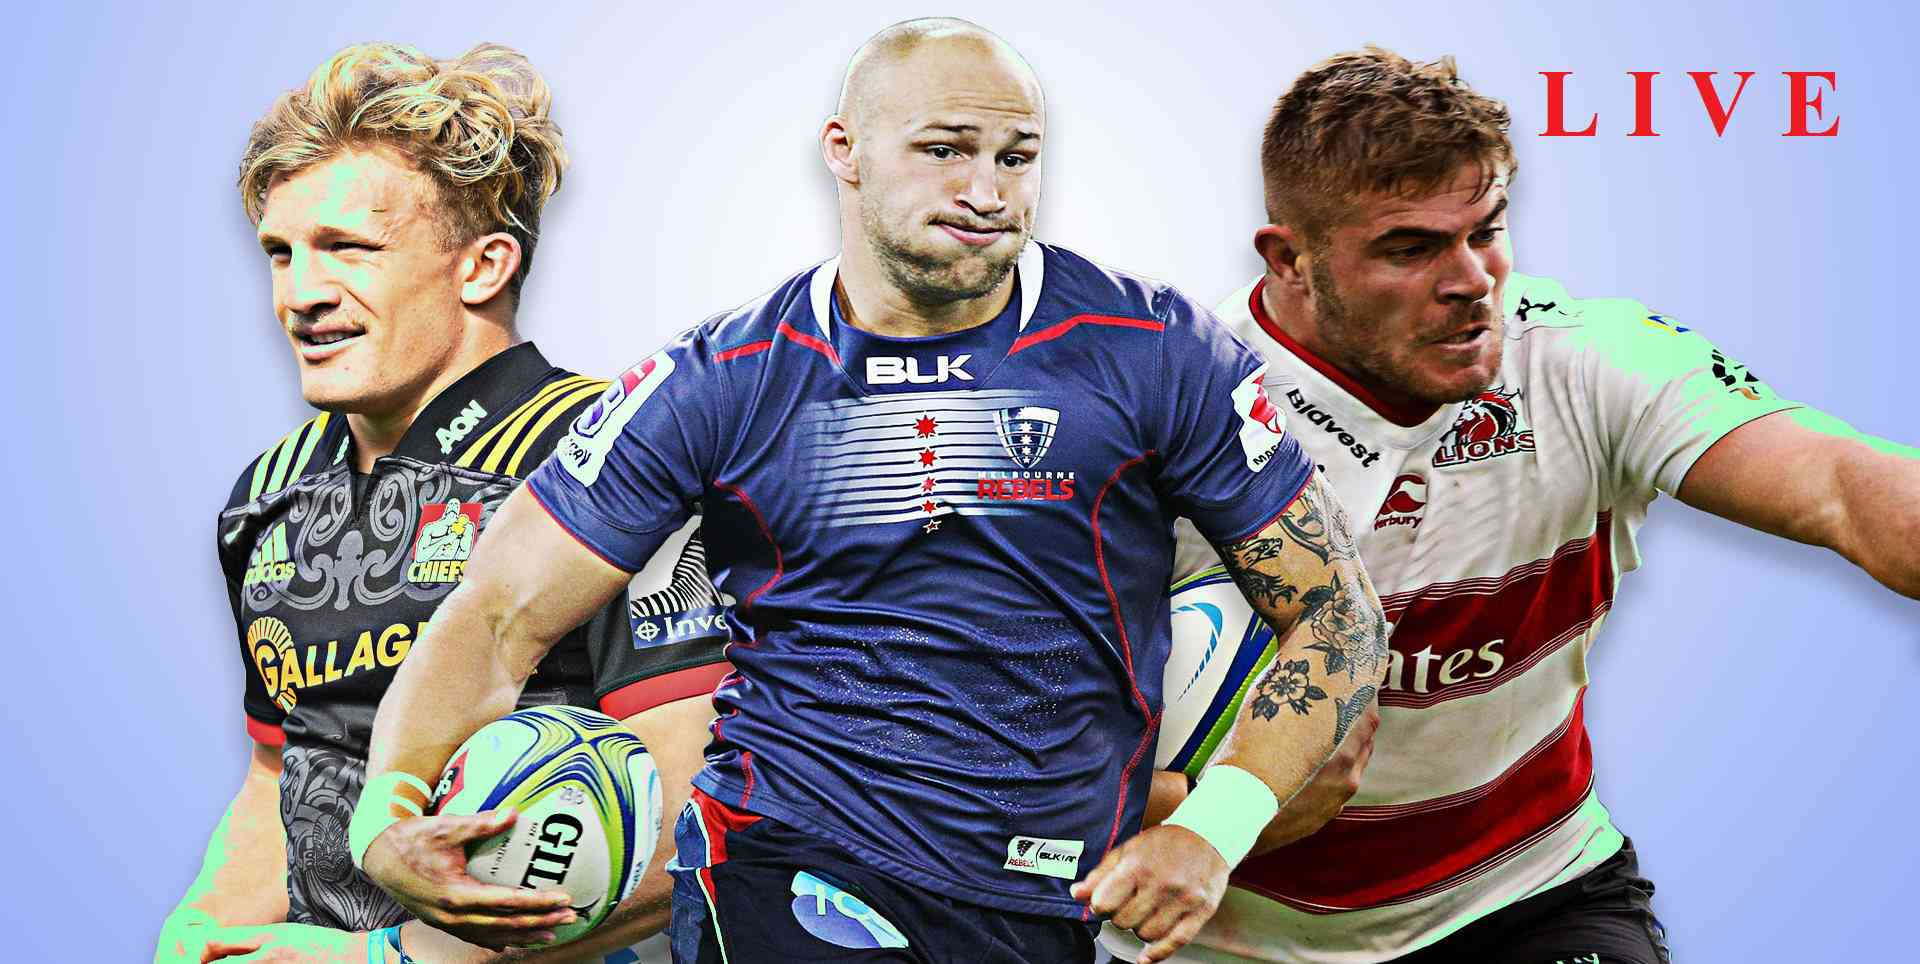 live-blue-bulls-vs-sharks-online